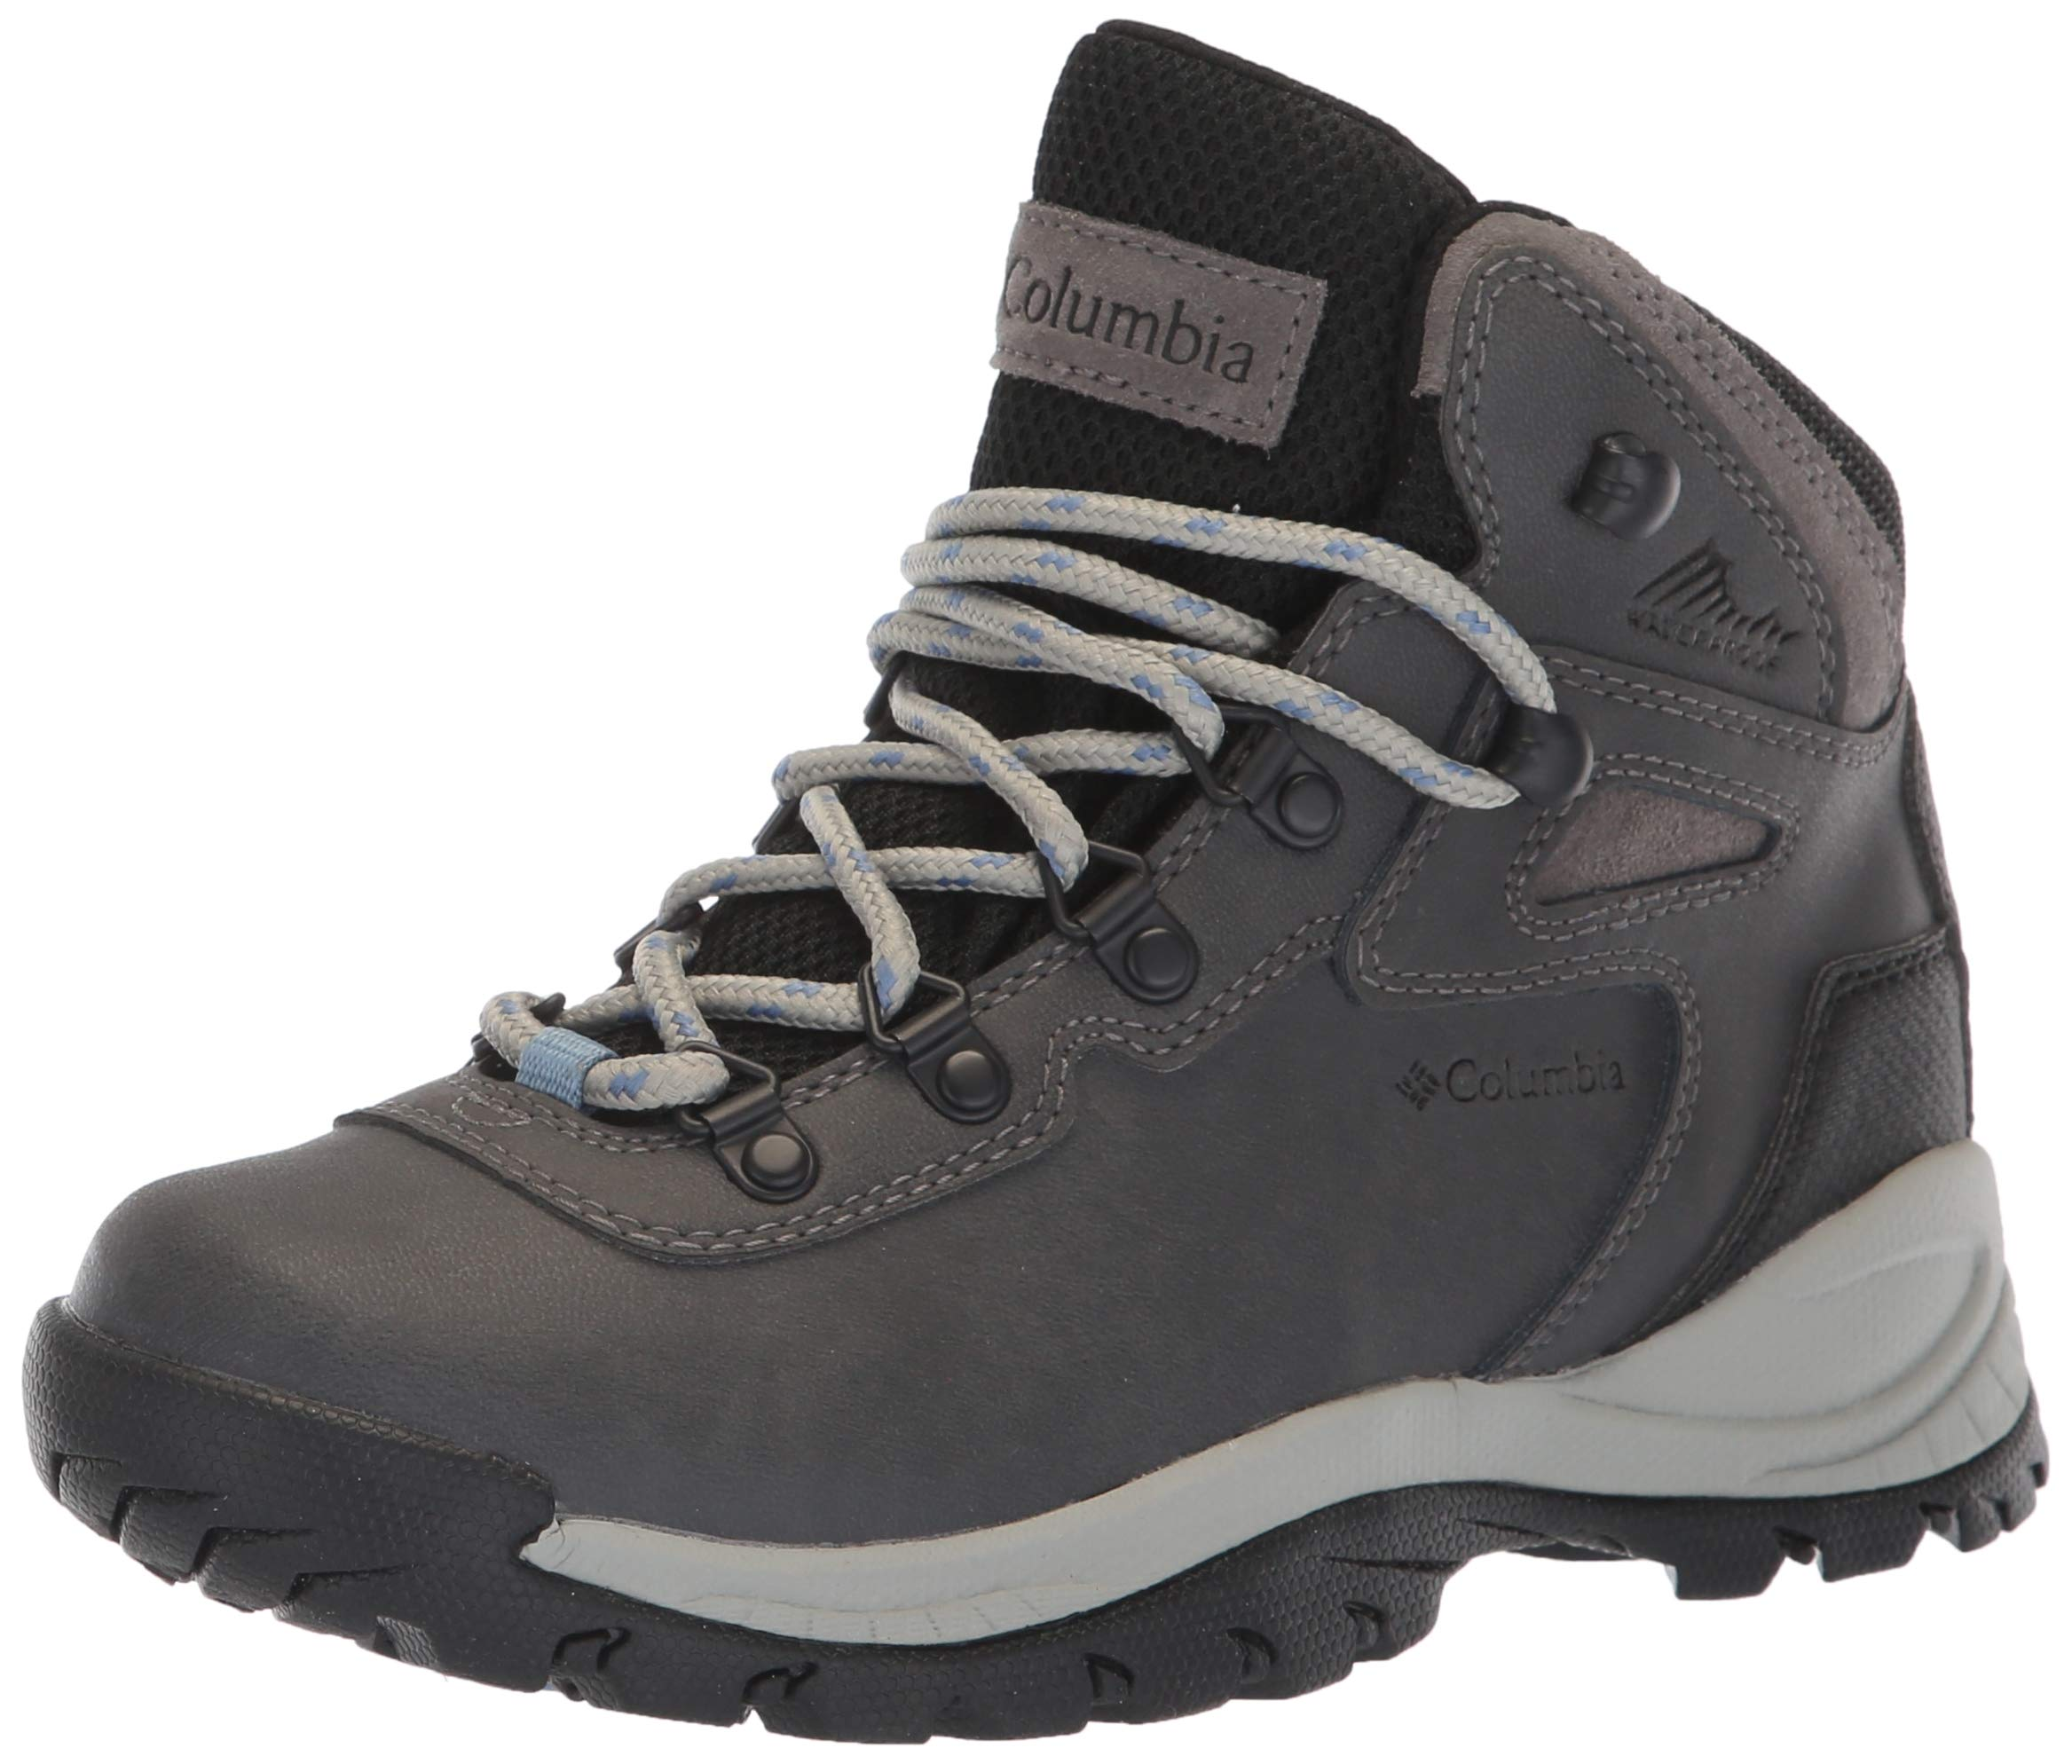 Columbia Women's Newton Ridge Plus Hiking Boot, Quarry/Cool Wave, 6 Wide US